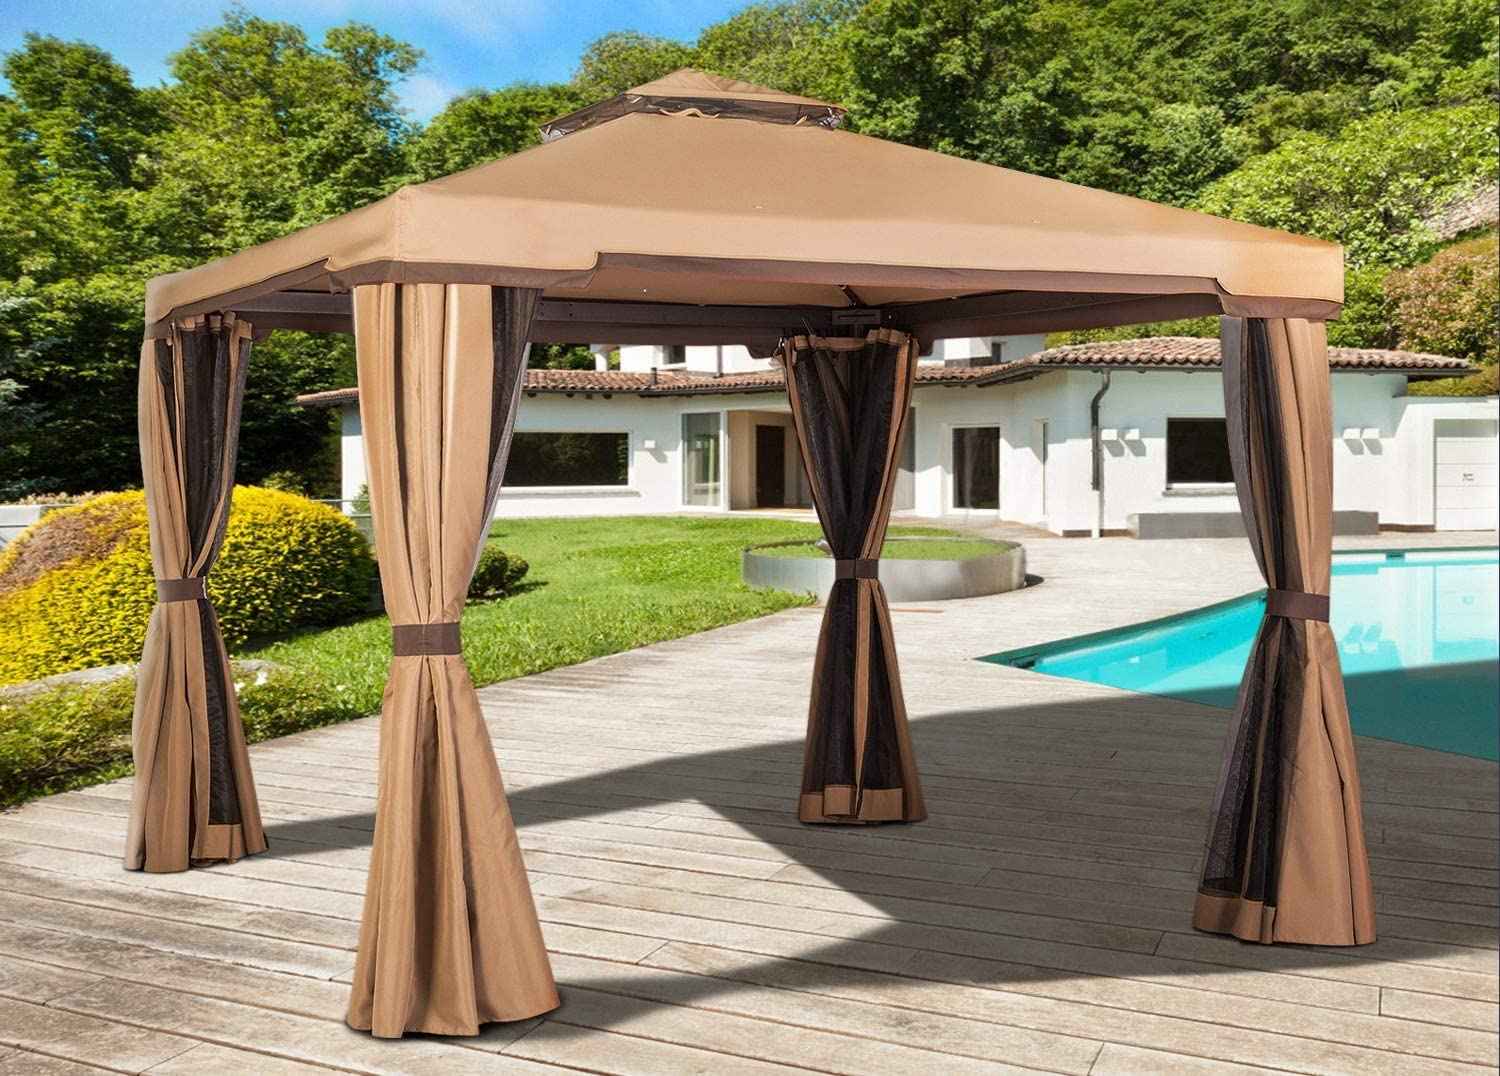 SOLAURA Patio Furniture 10' x 10' Outdoor Garden Gazebo Light Brown Canopy Tent with Mosquito Netting